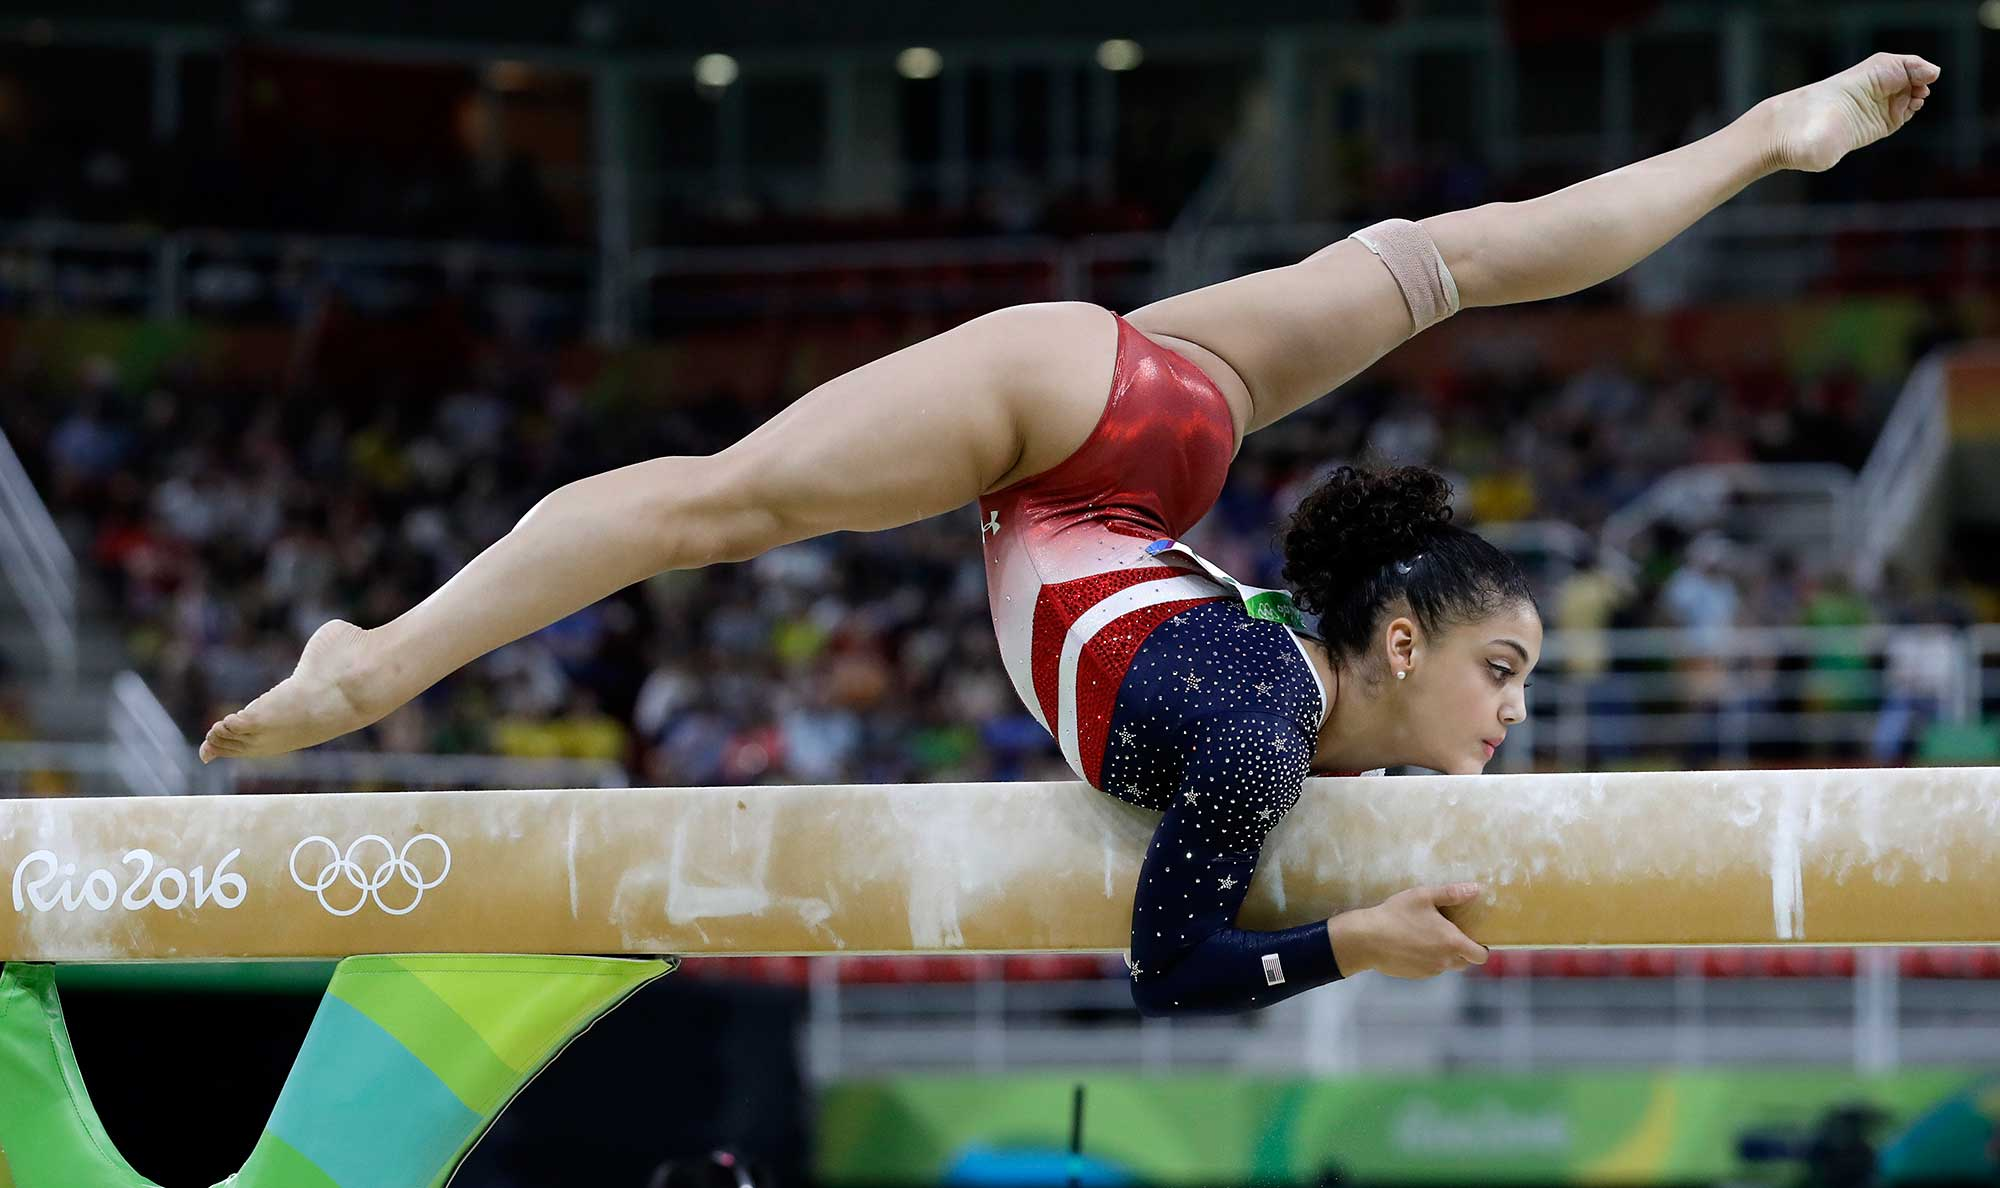 gymnastics wallpapers hd backgrounds Accent Wallpaper Dining Room Ideas Accent Wallpaper Dining Room Ideas